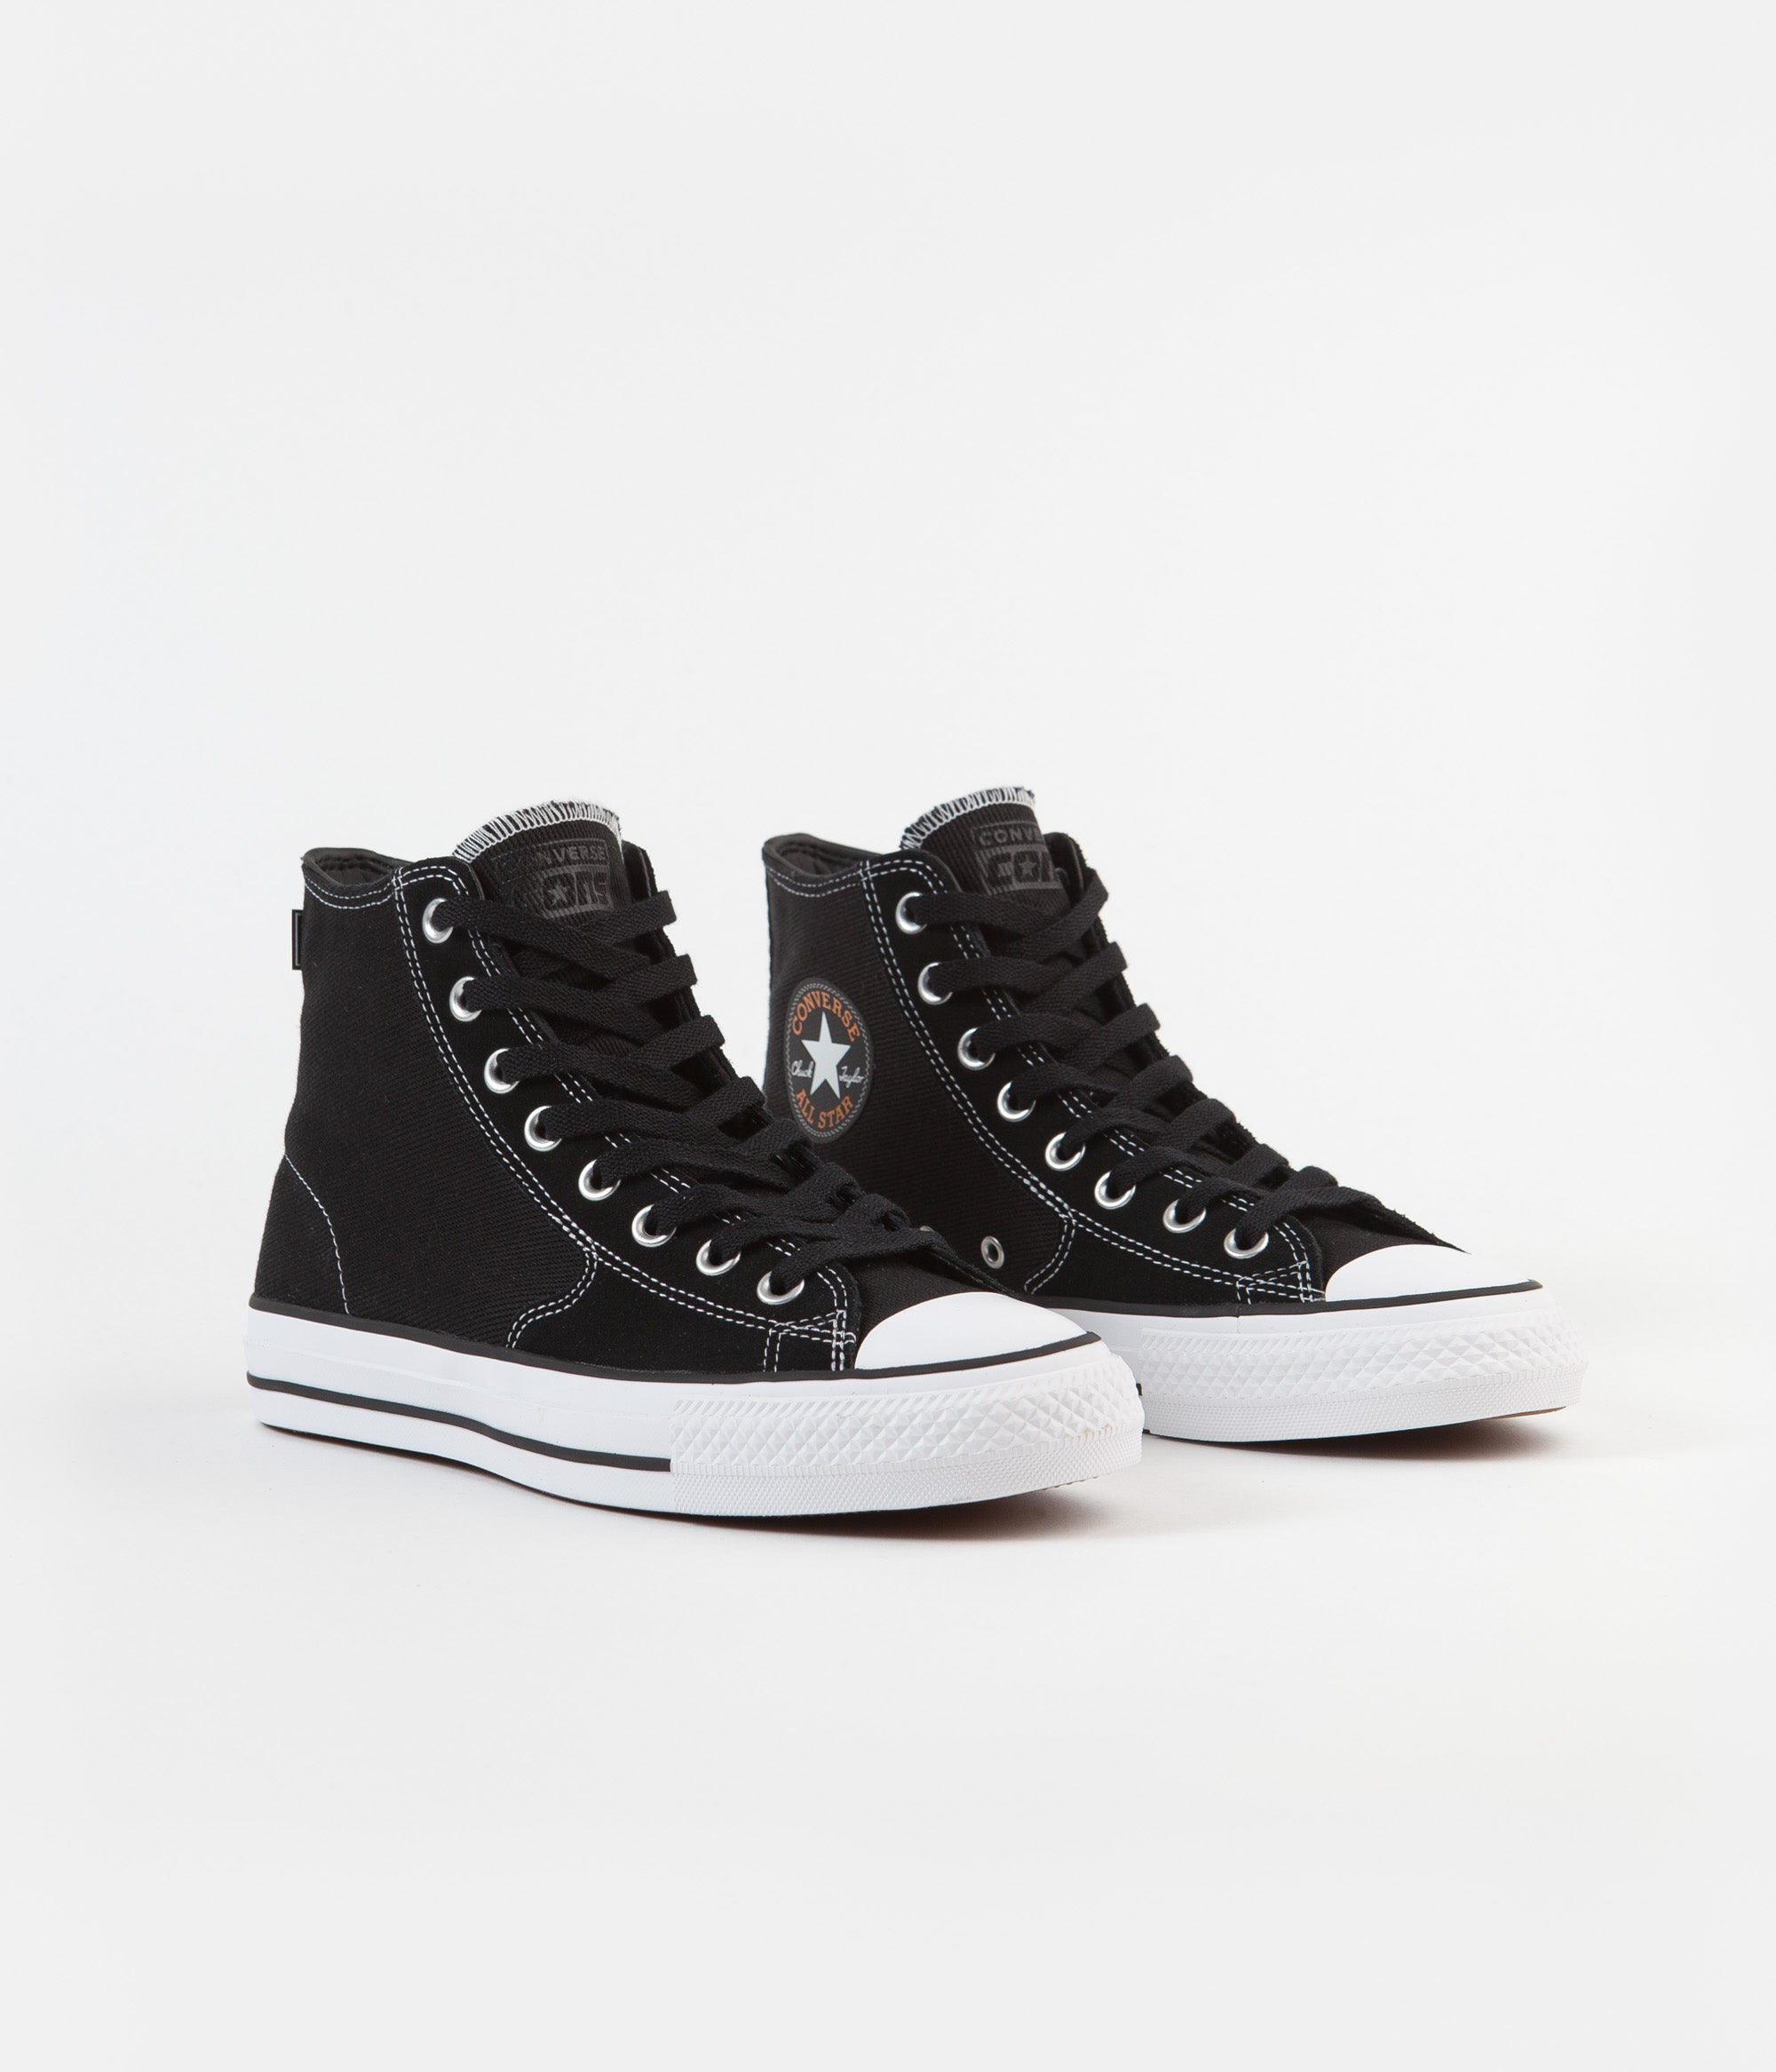 Converse CTAS Pro Hi Workwear Twill Shoes - Black / Orange Rind / White